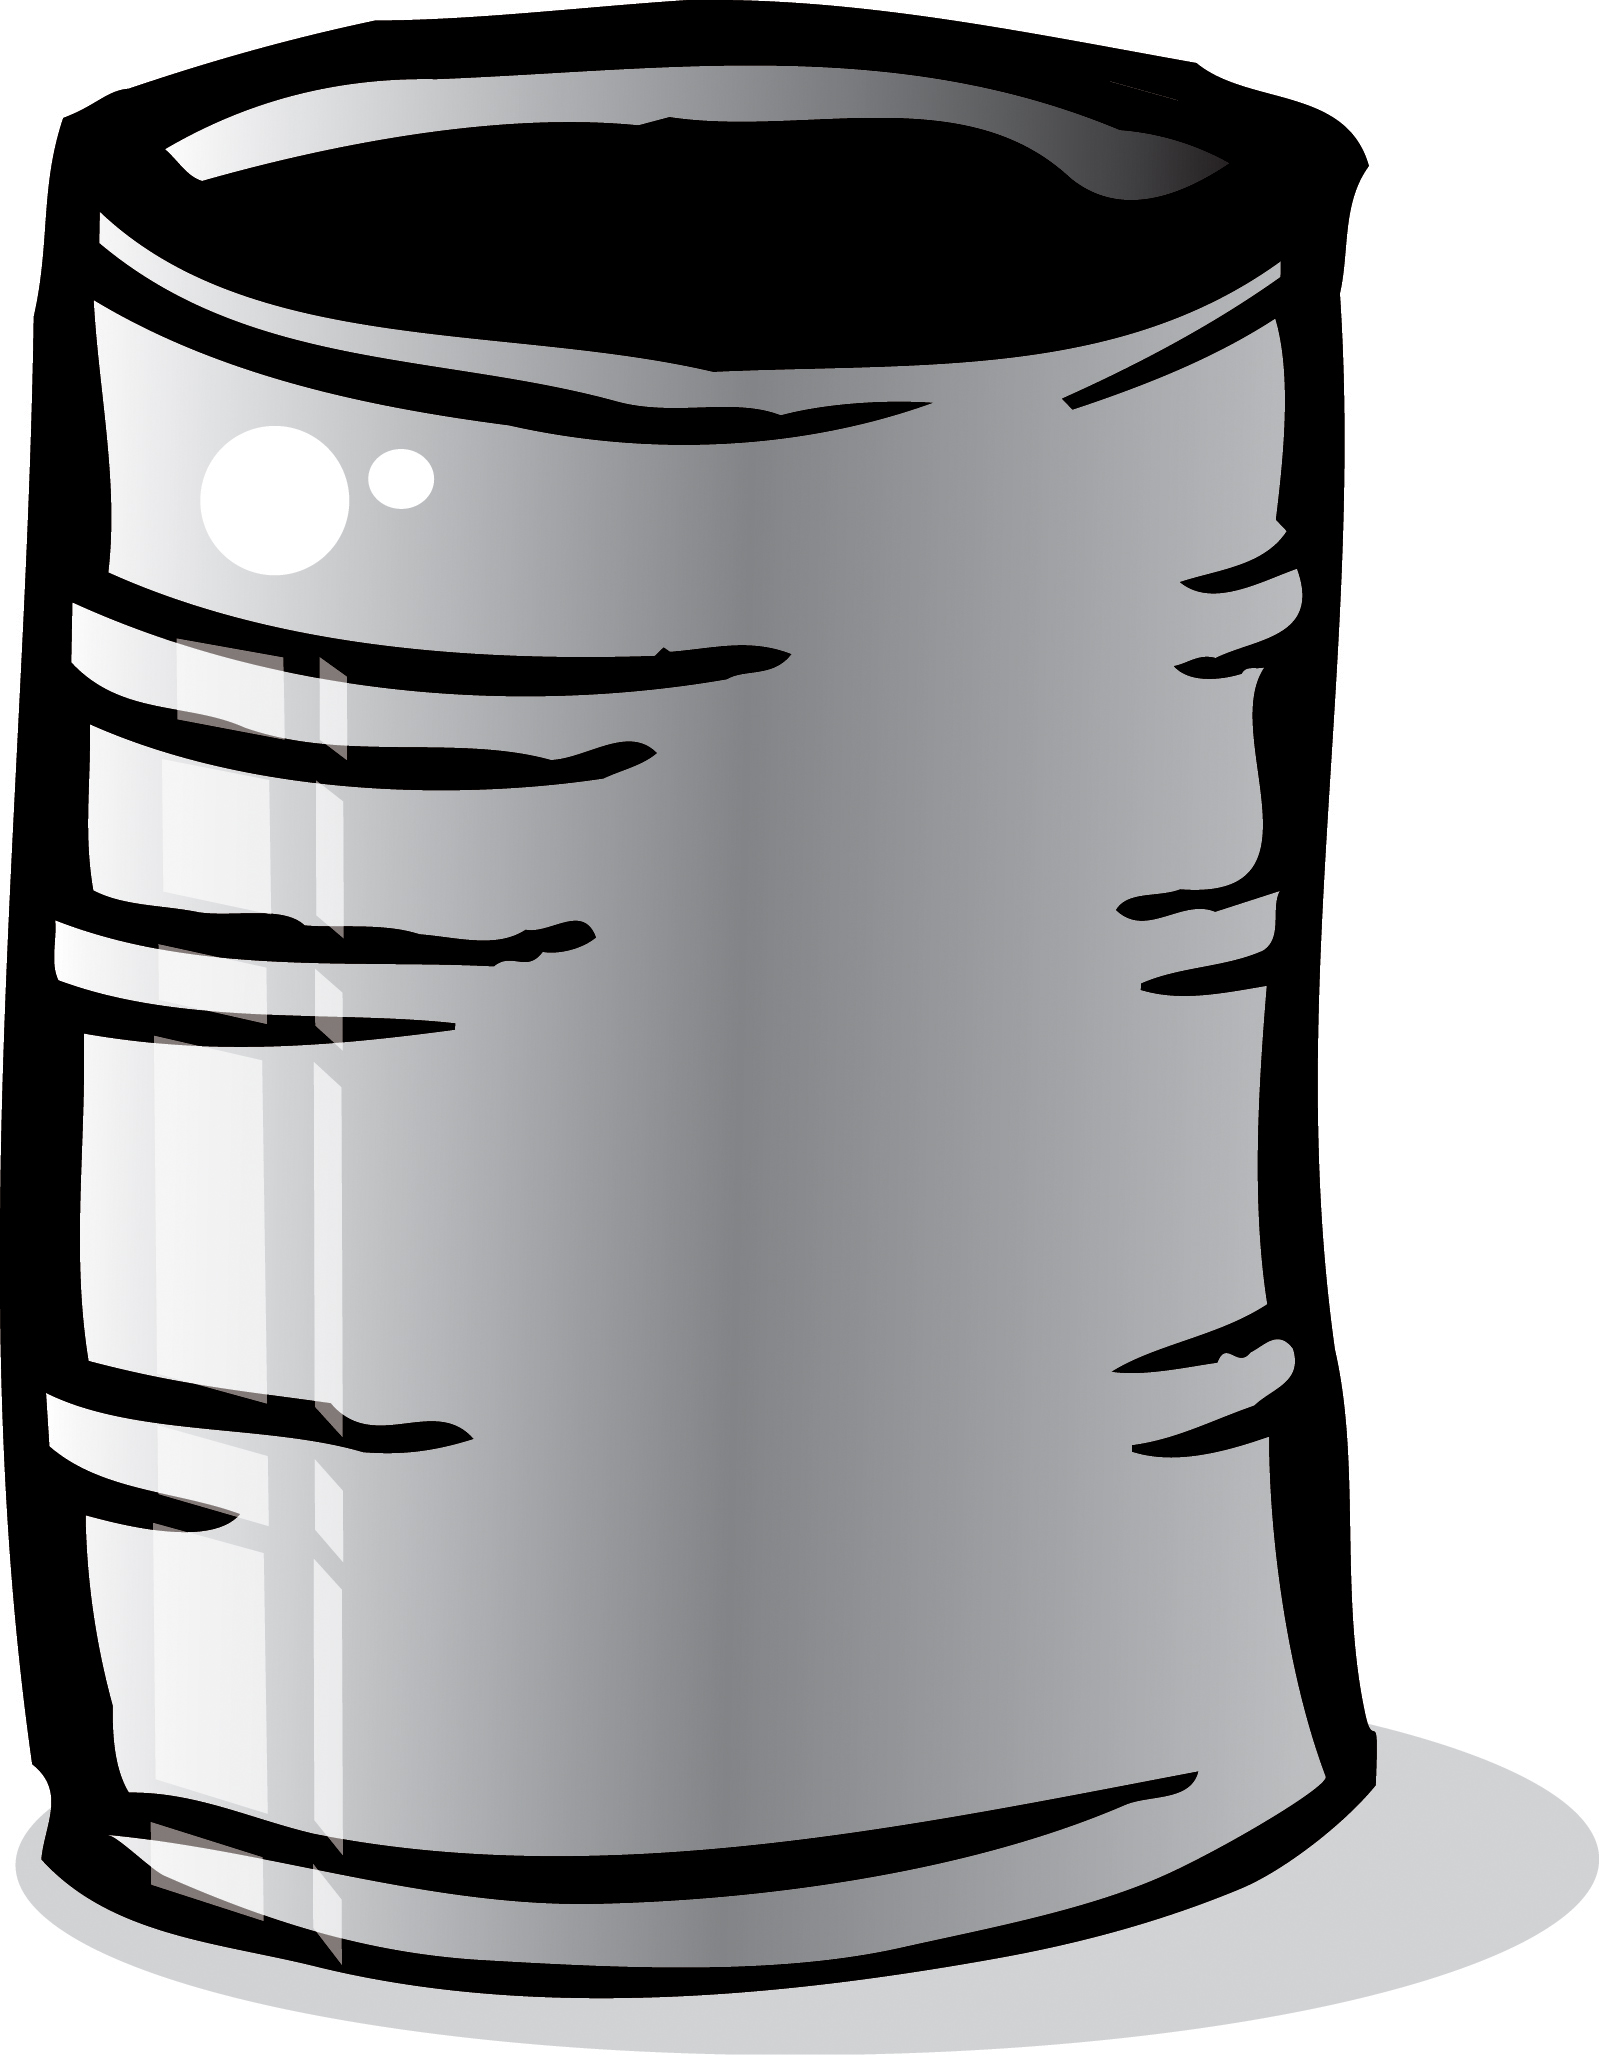 Metal cans clipart.